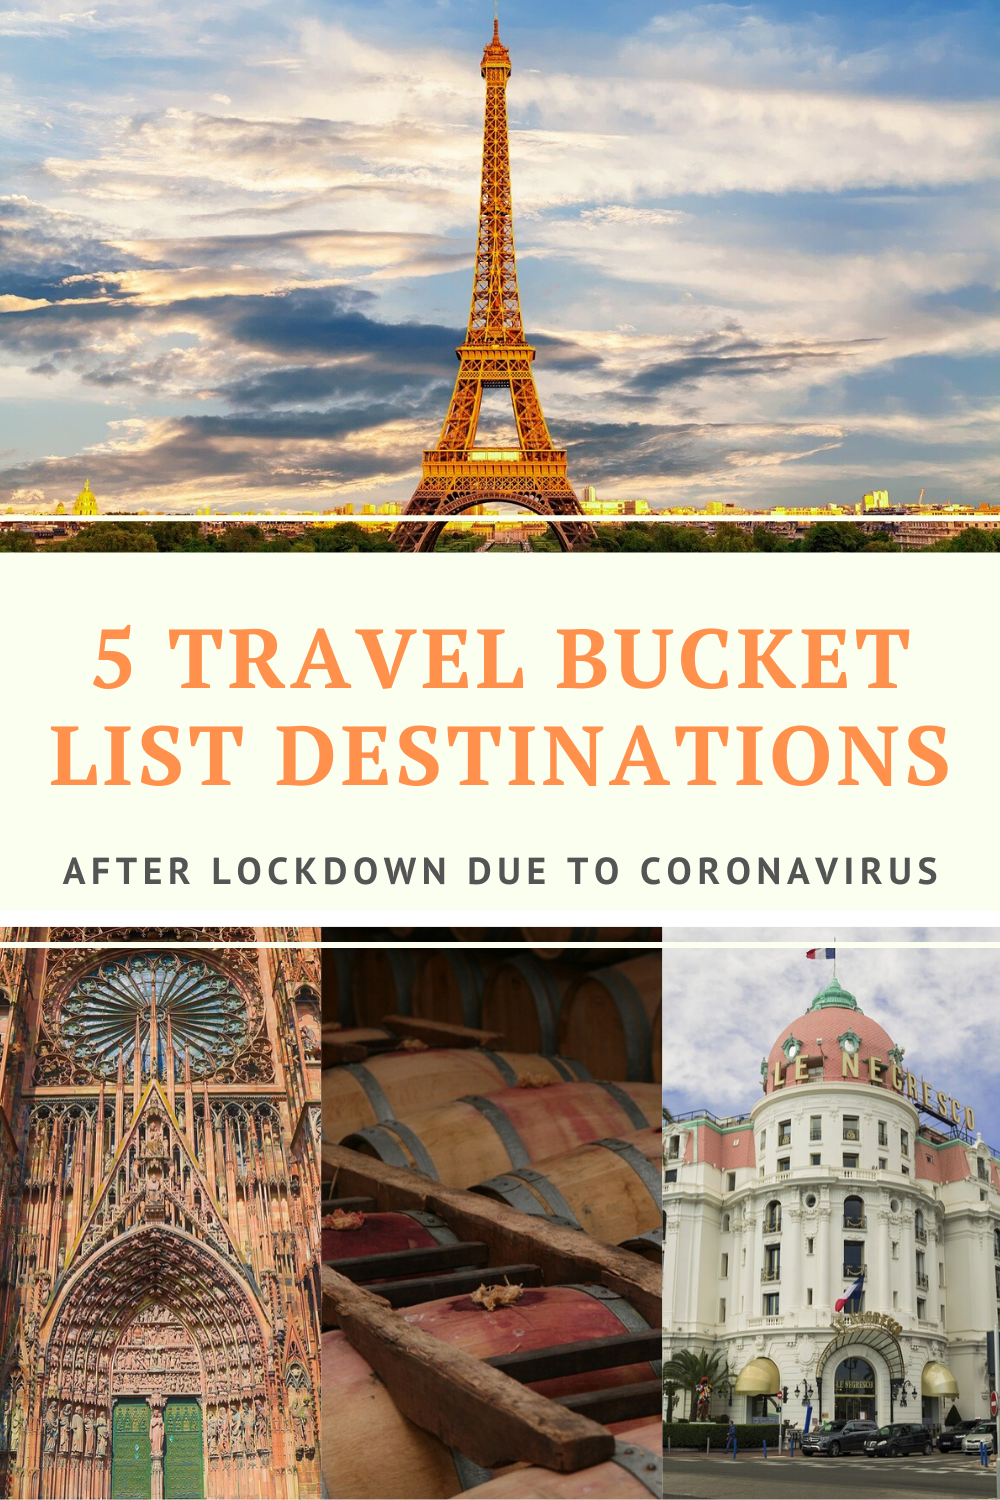 5 Travel Countries Bucket List Destinations After Lockdown Due to Coronavirus #Travel #Country #Paris #BucketList #TravelList #TravelDestination #Lockdown #Coronavirus #Quarantine #TravelOnline #Travelling #Nice #Bordeaux #Strasbourg #Blog #TravelBlog #TravelAlone #Holiday #Backpacker